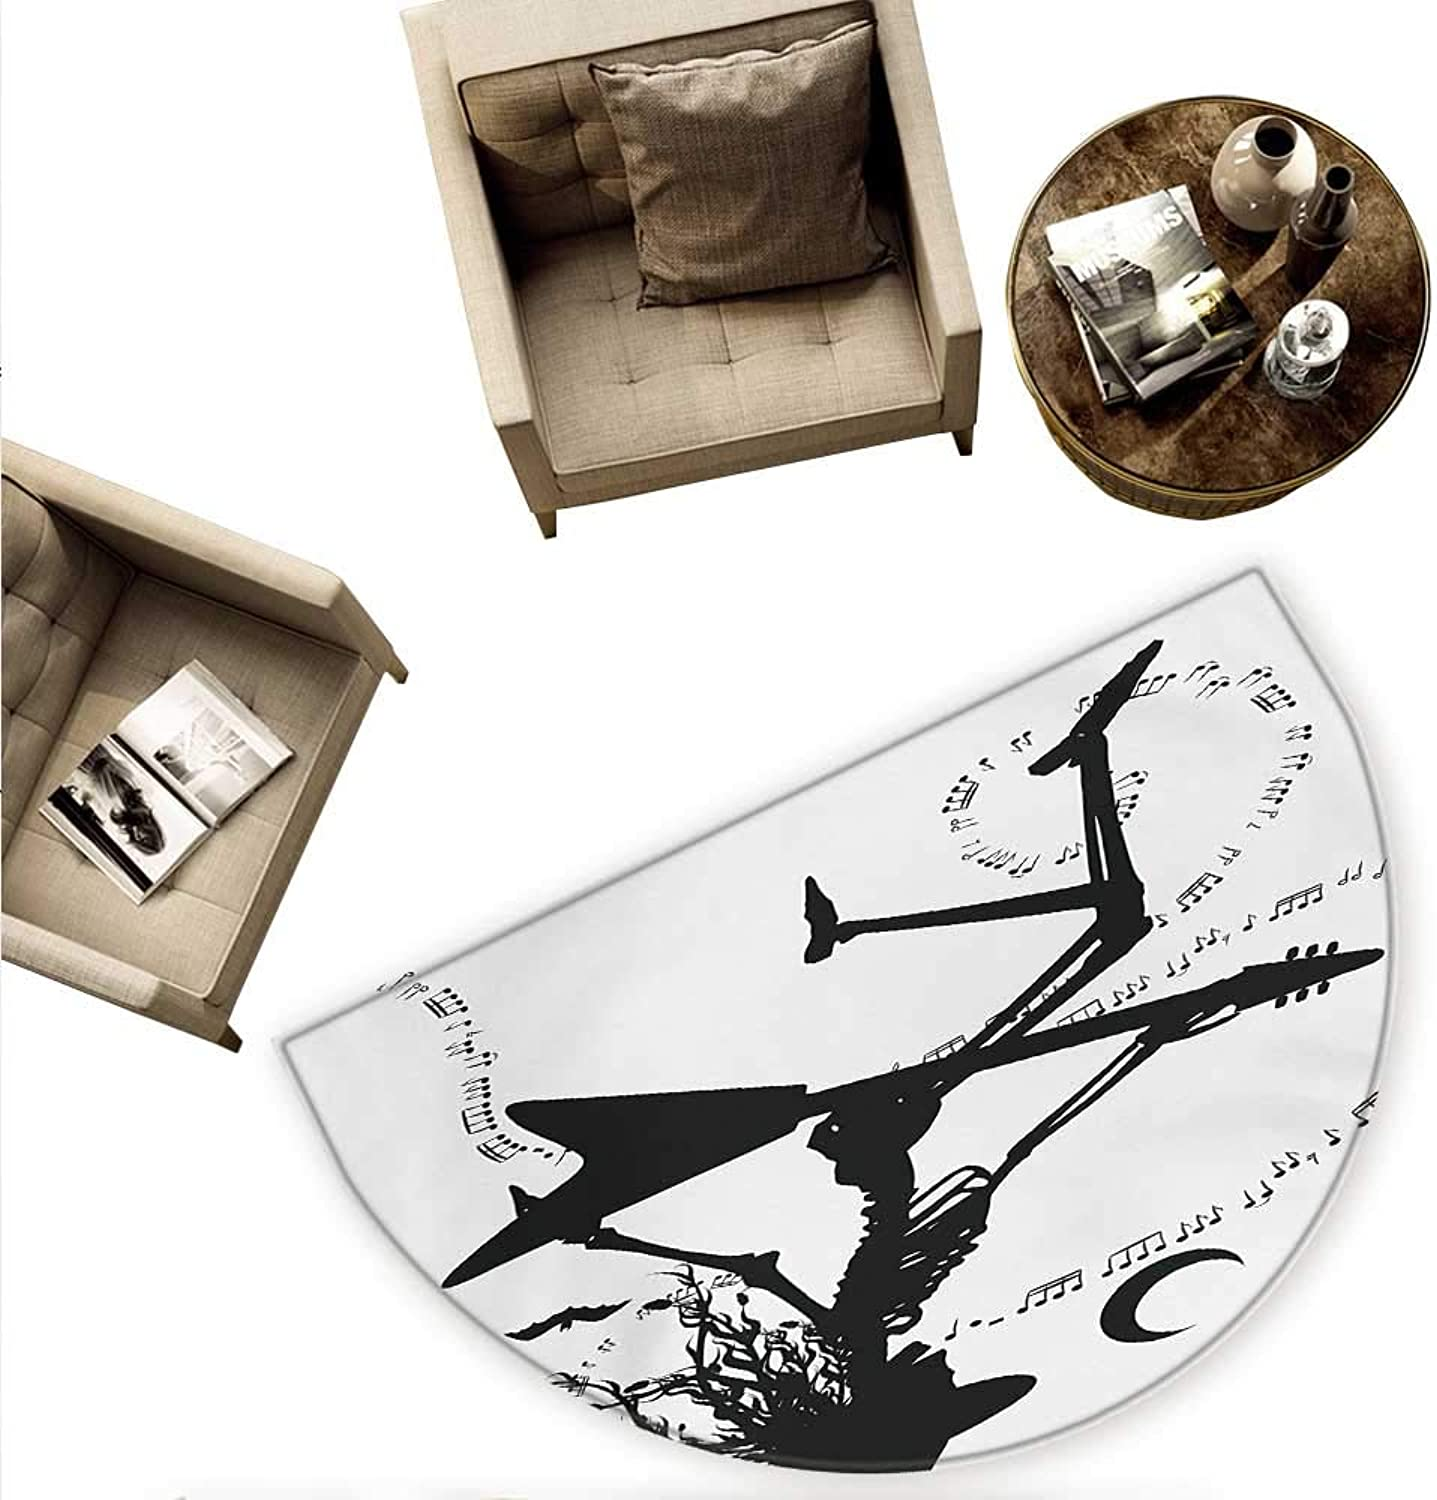 Music Semicircular Cushion Witch Flying on Electric Guitar Notes Bat Magical Halloween Artistic Illustration Entry Door Mat H 78.7  xD 118.1  Black White